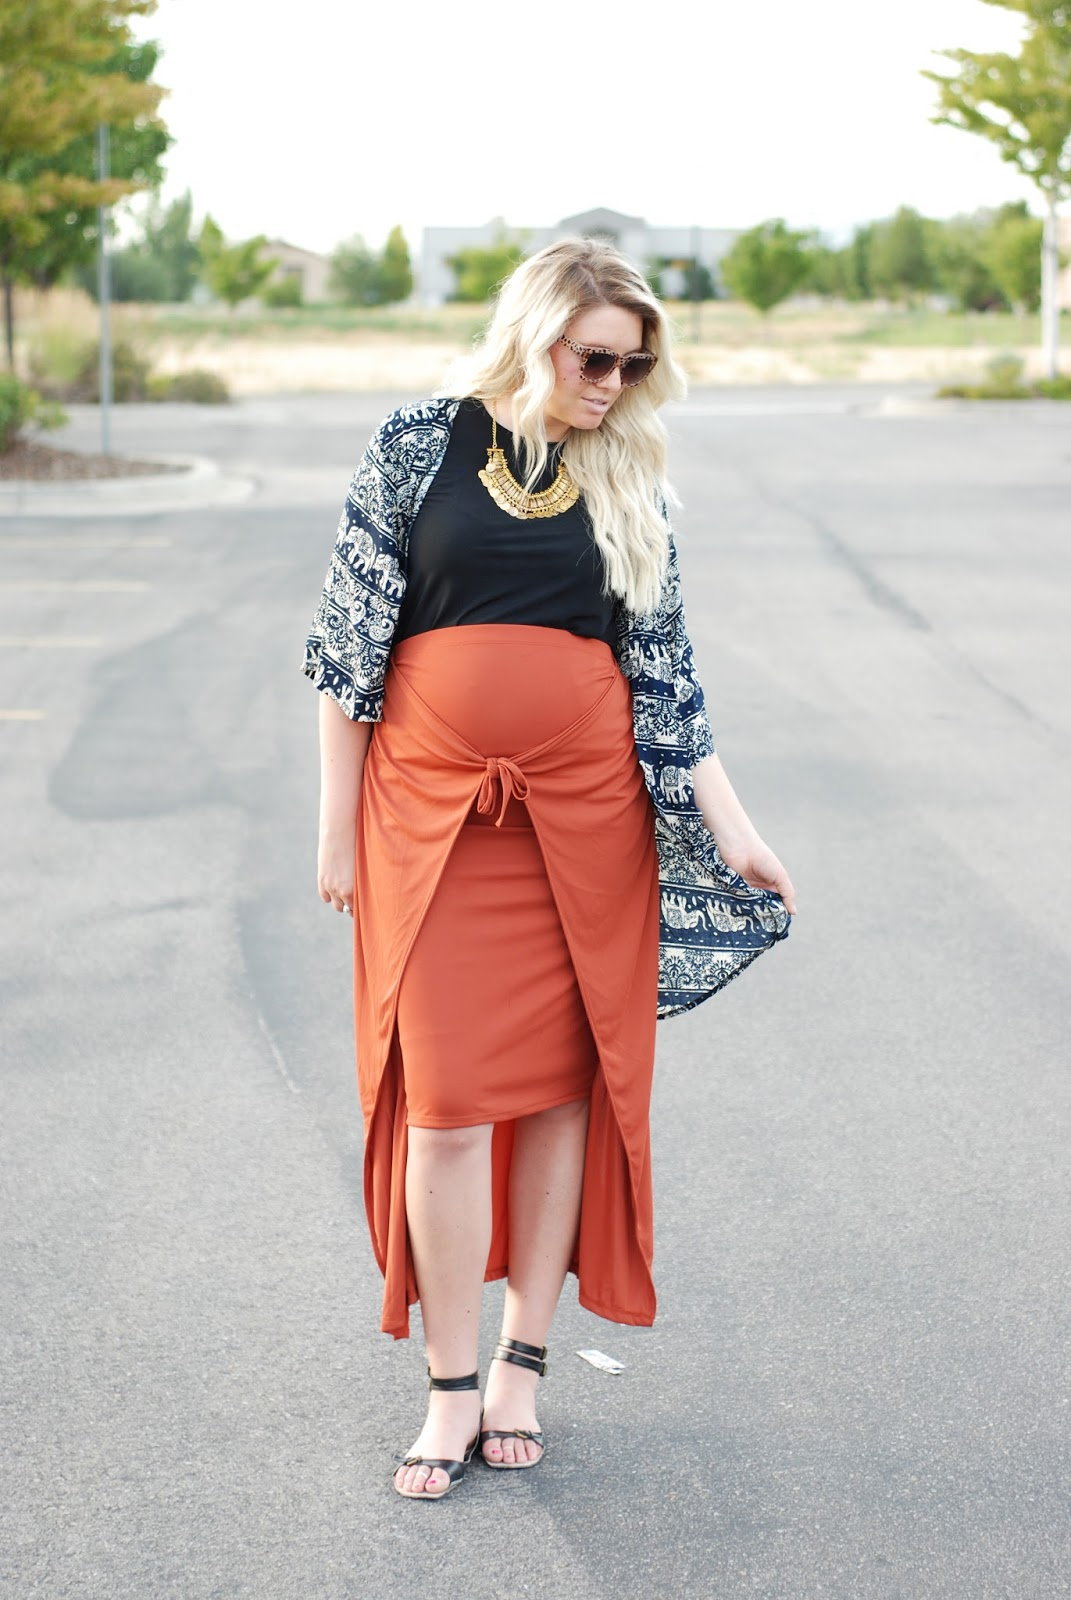 Choies, ASOS, Maternity Outfit